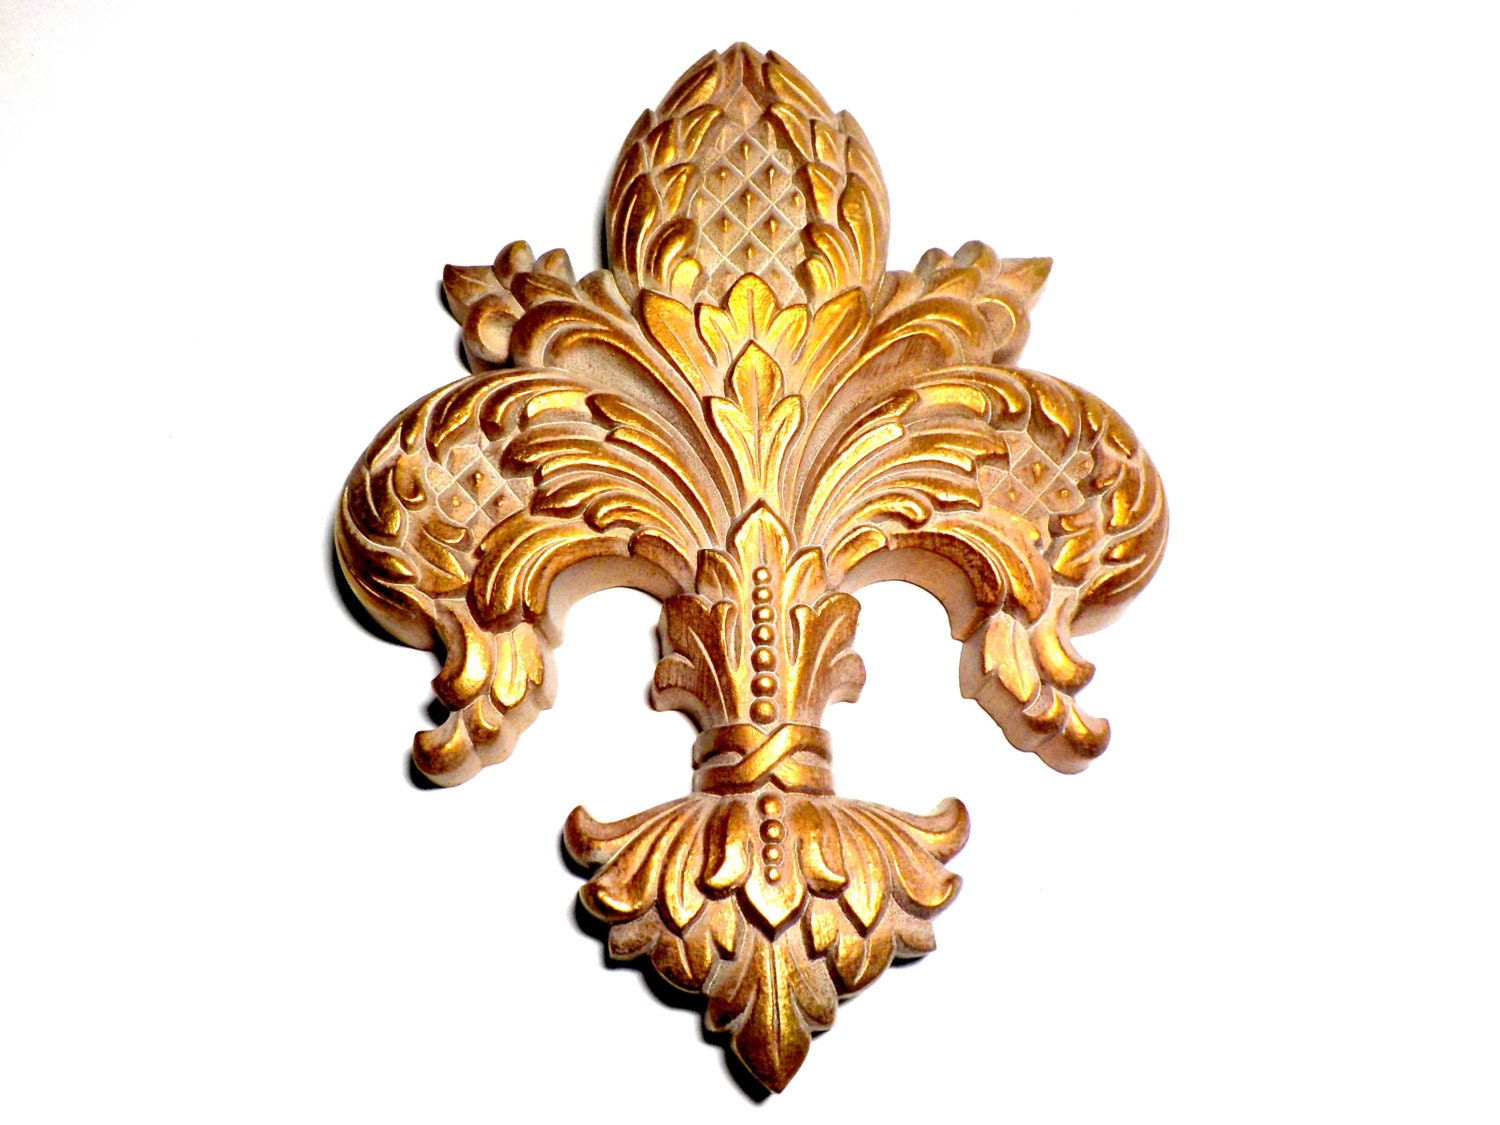 Vintage Gold Wall Decor Gold Fleur De Lis French Decor Old